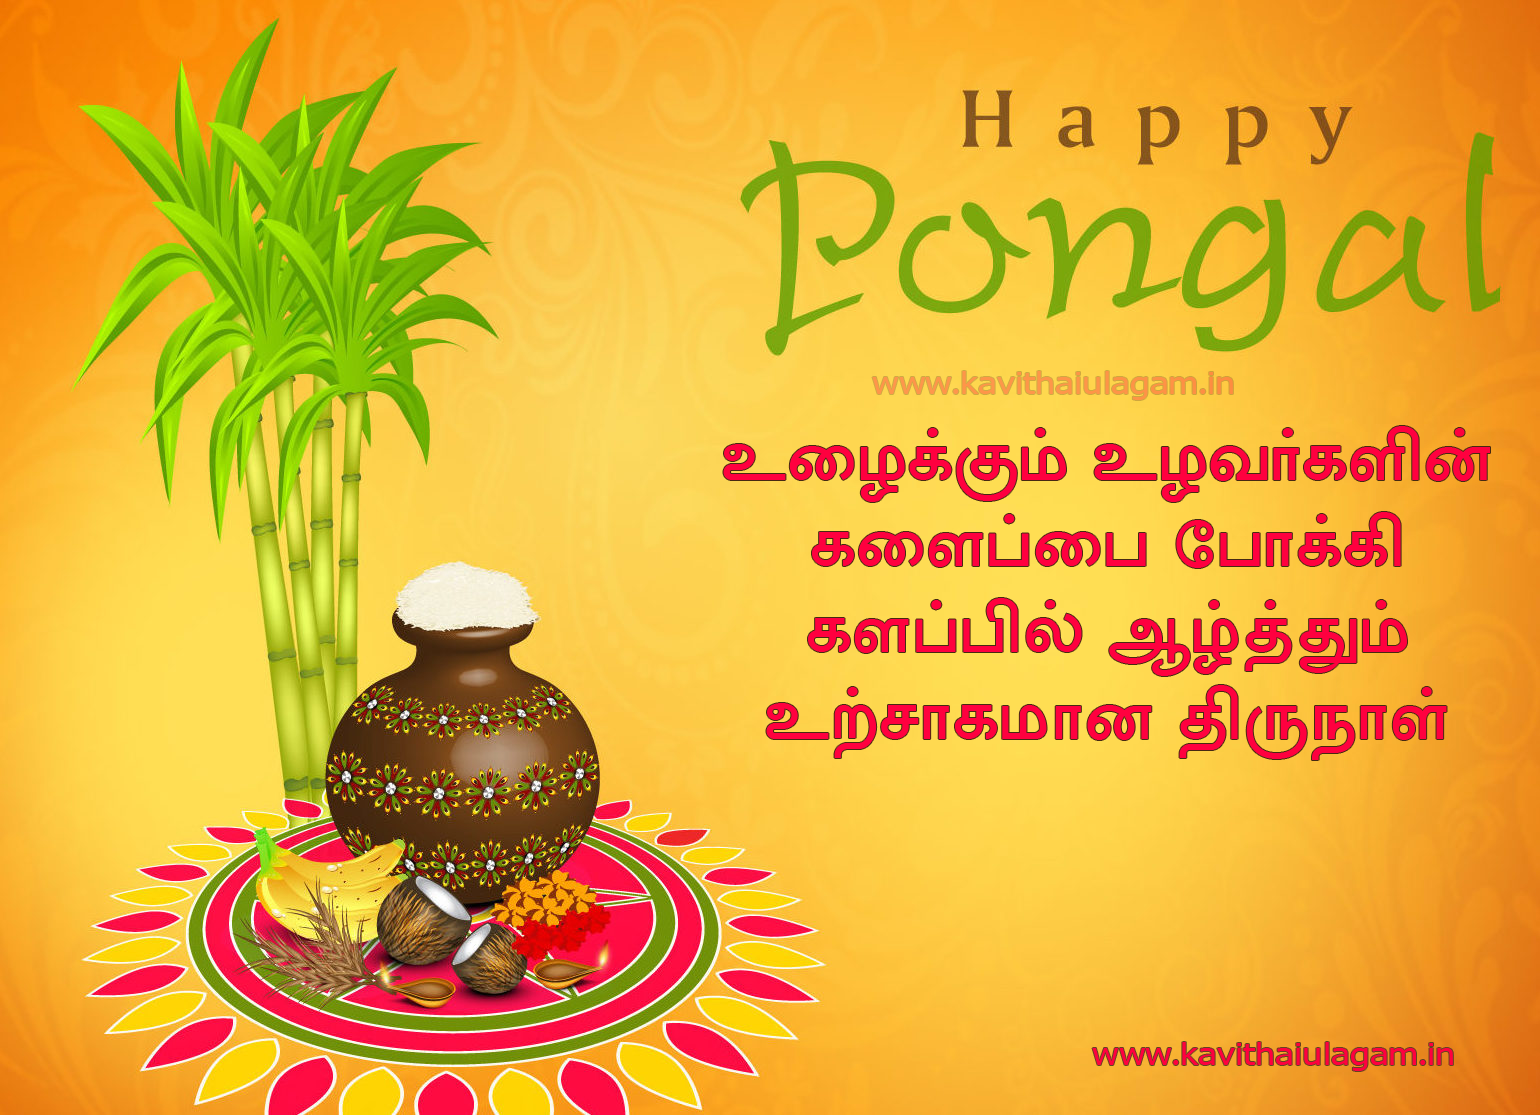 Pongal wishes in tamil 2018 kavithaigal ulagam kavithaigal ulagam pongal wishes in tamil 2018 kavithaigal ulagam m4hsunfo Image collections